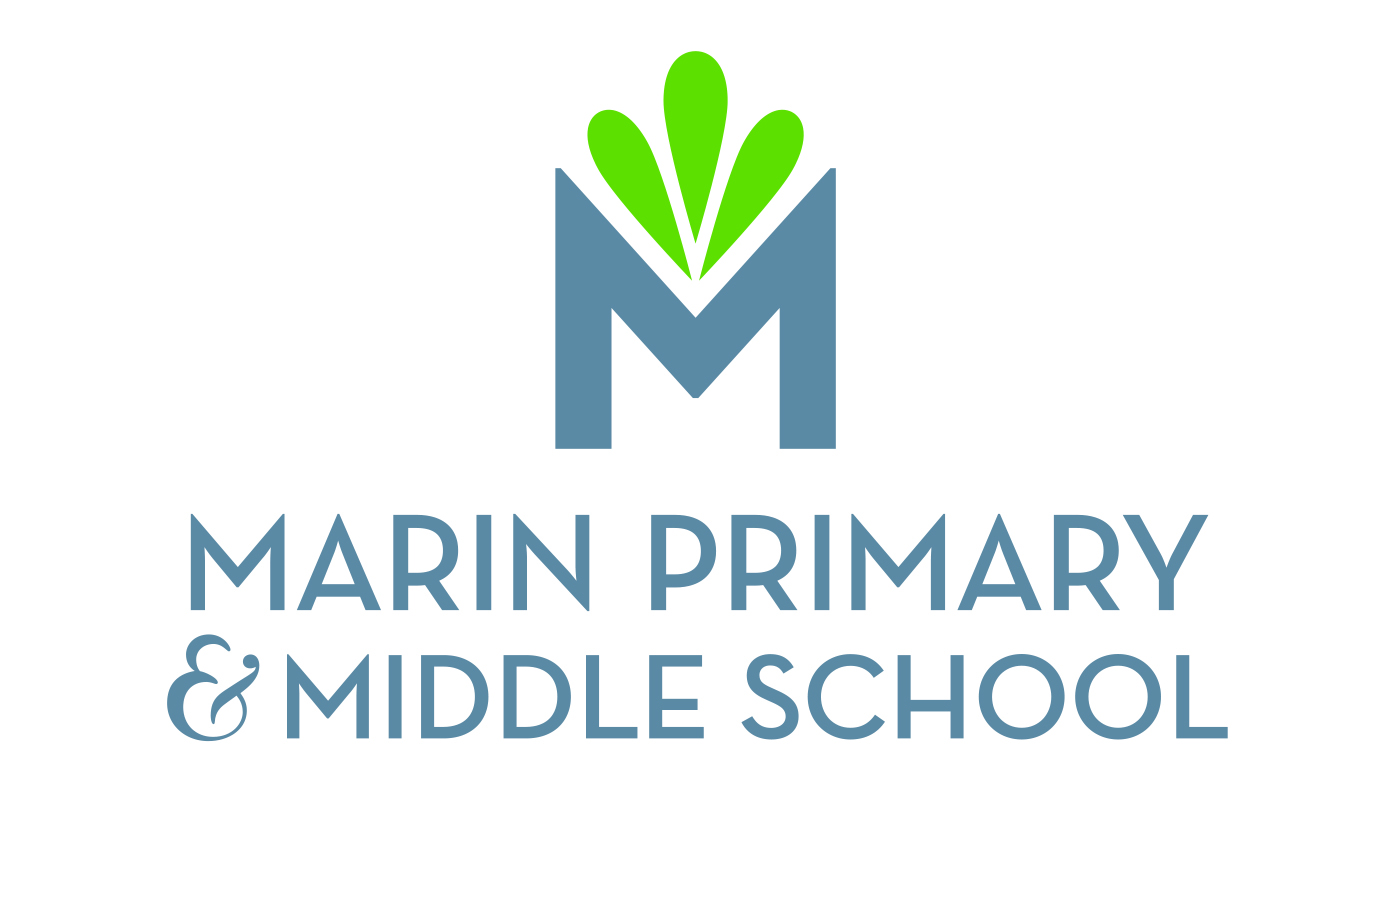 Marin_primary___middle_school_-_logo